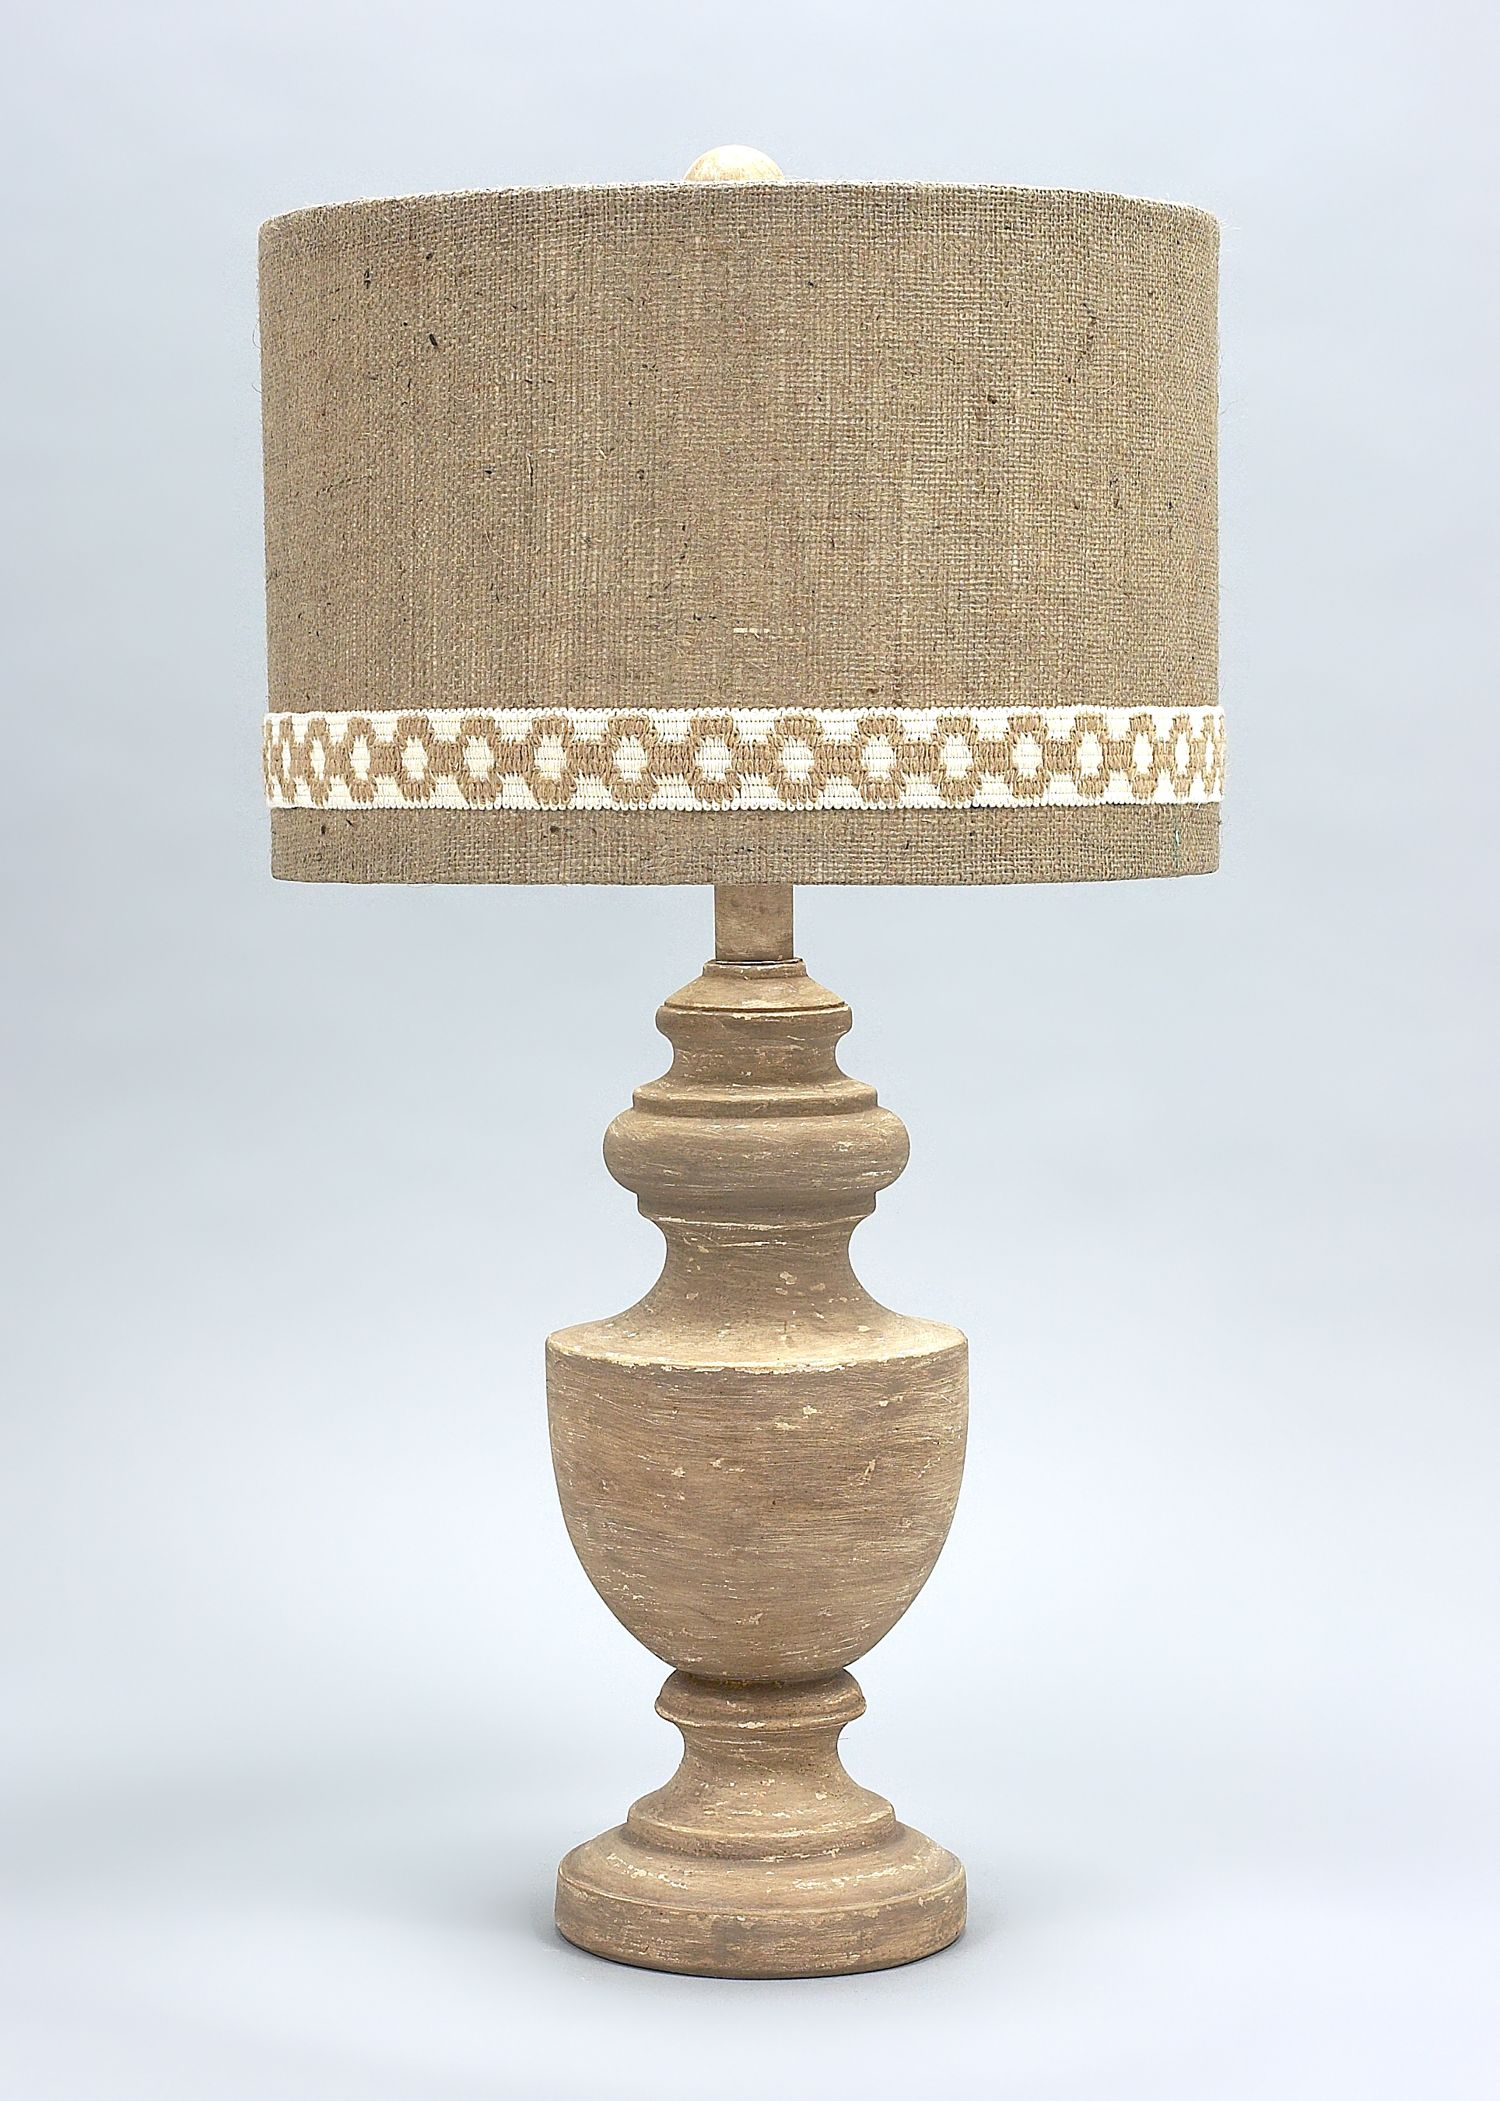 Cl239 Lacefield Designs For Gallery Lighting Lamp #Burlap Wwwlacefielddesignscom Www